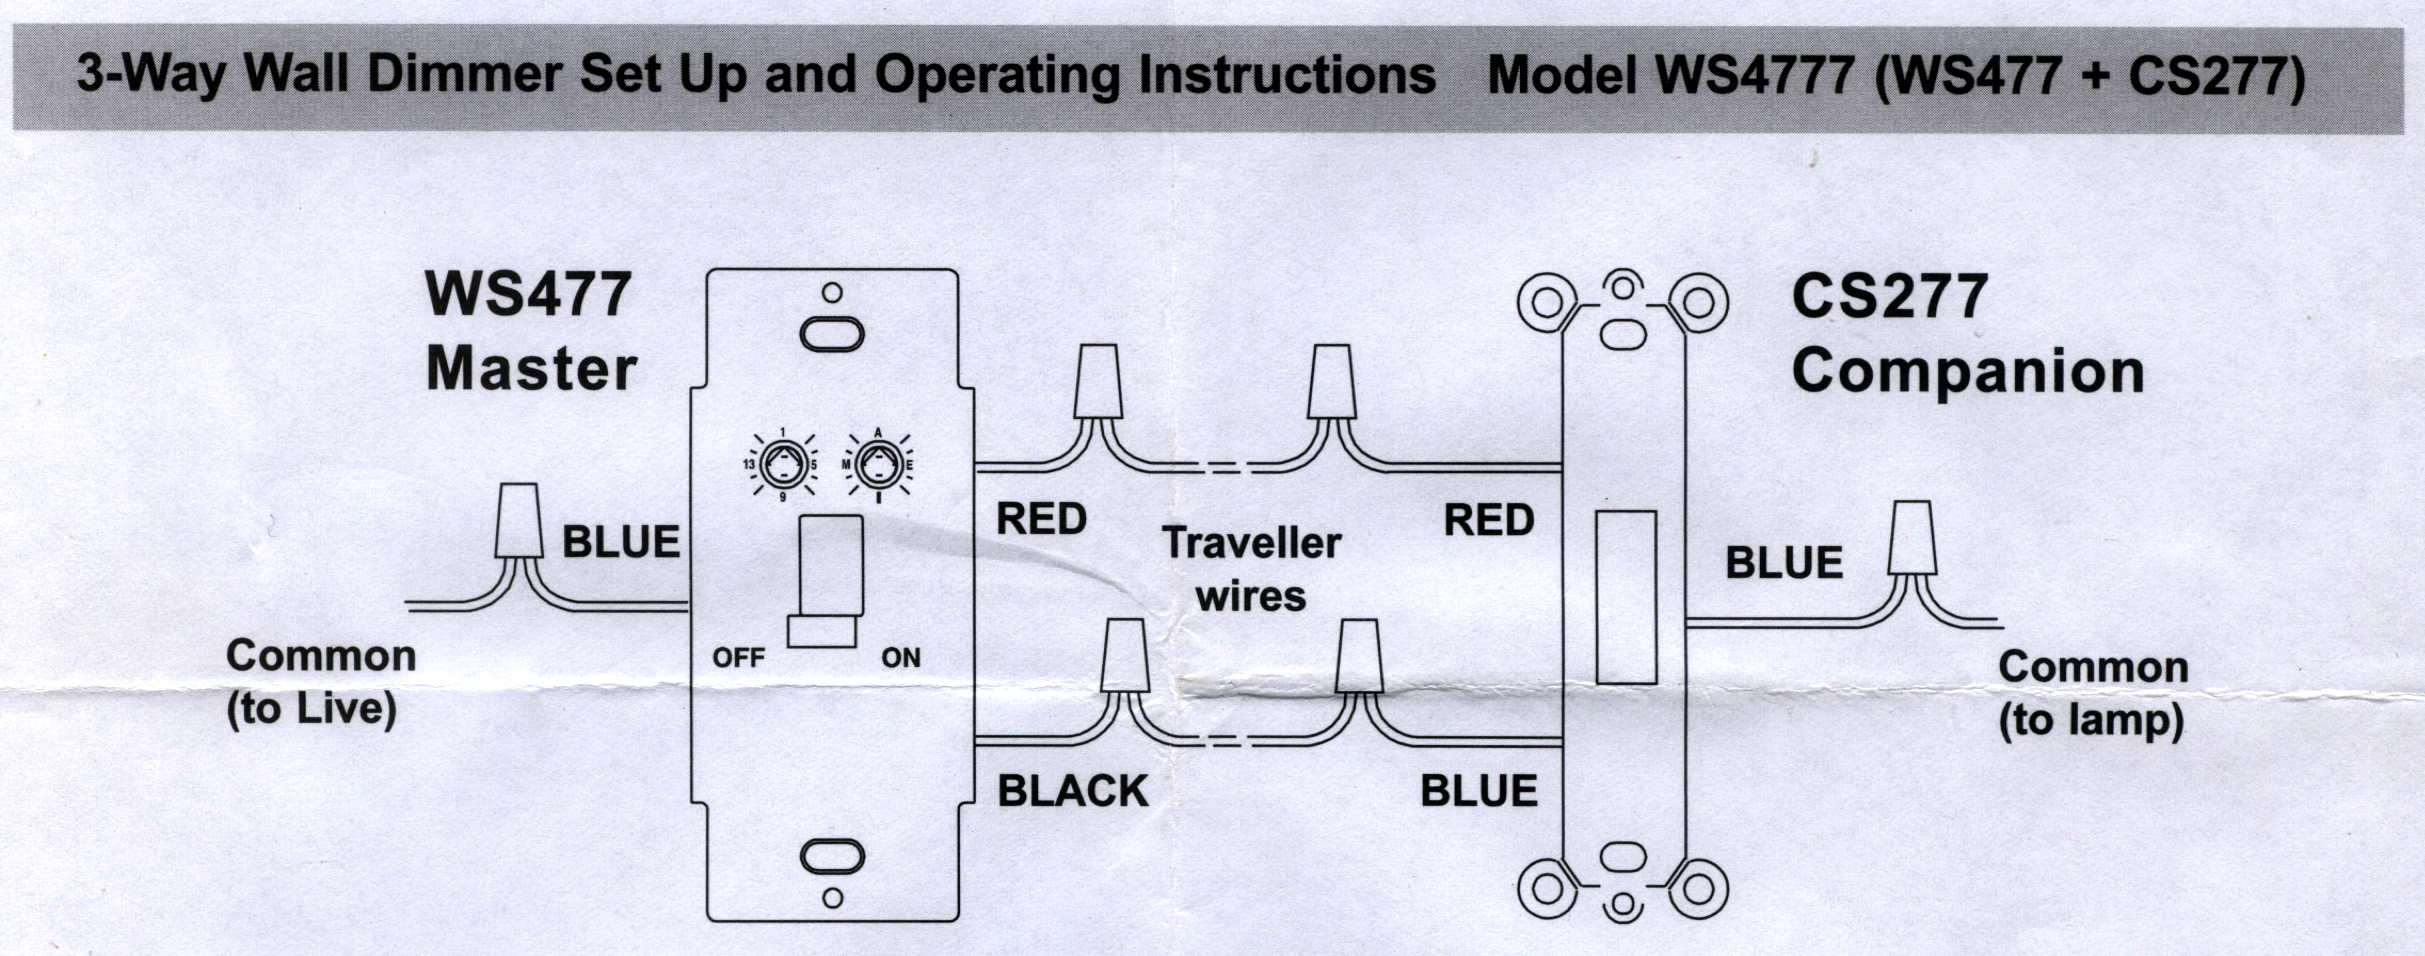 2 way switching wiring diagram mercedes sl using a 3 x10 wall switch as the